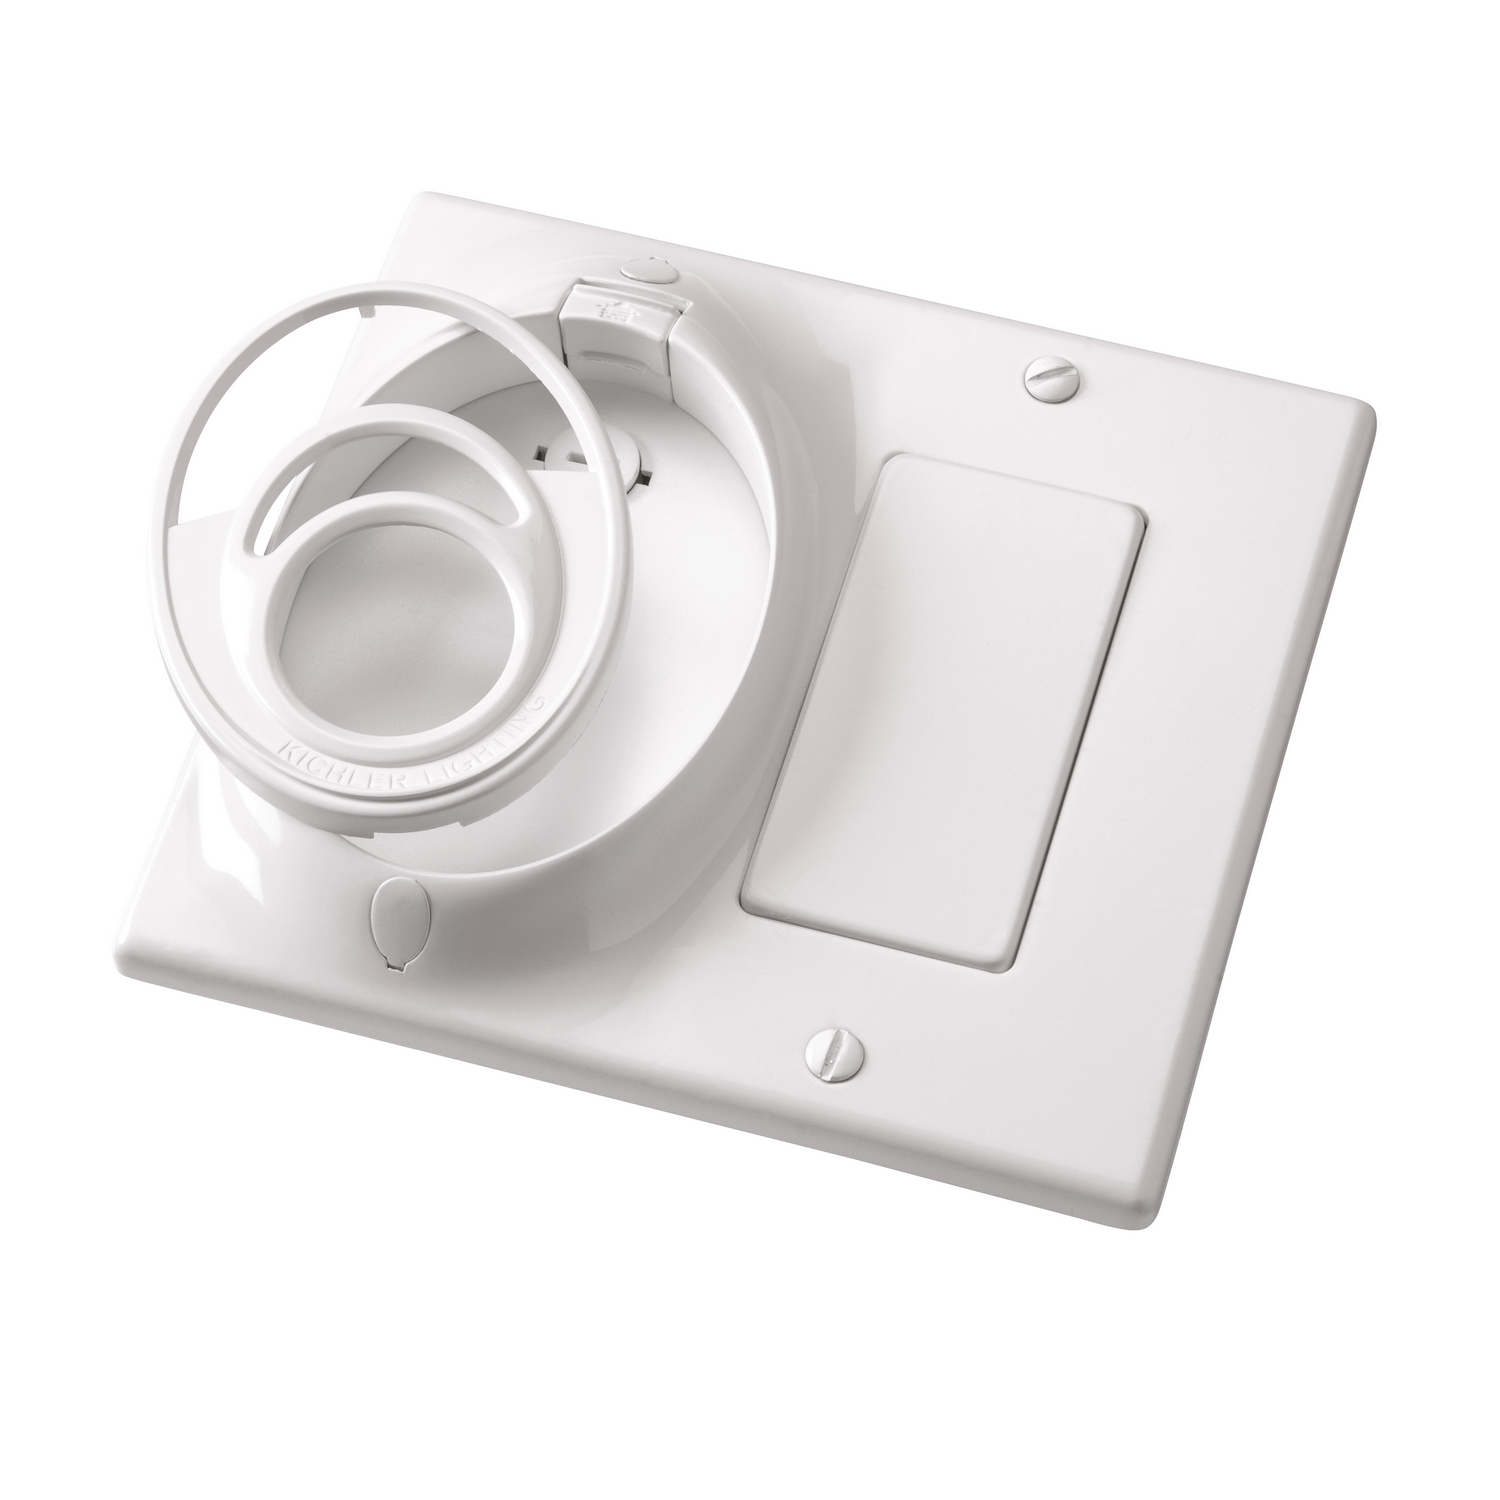 Dual Gang CoolTouch Wall Plate from the Accessory collection by Kichler 370011WH